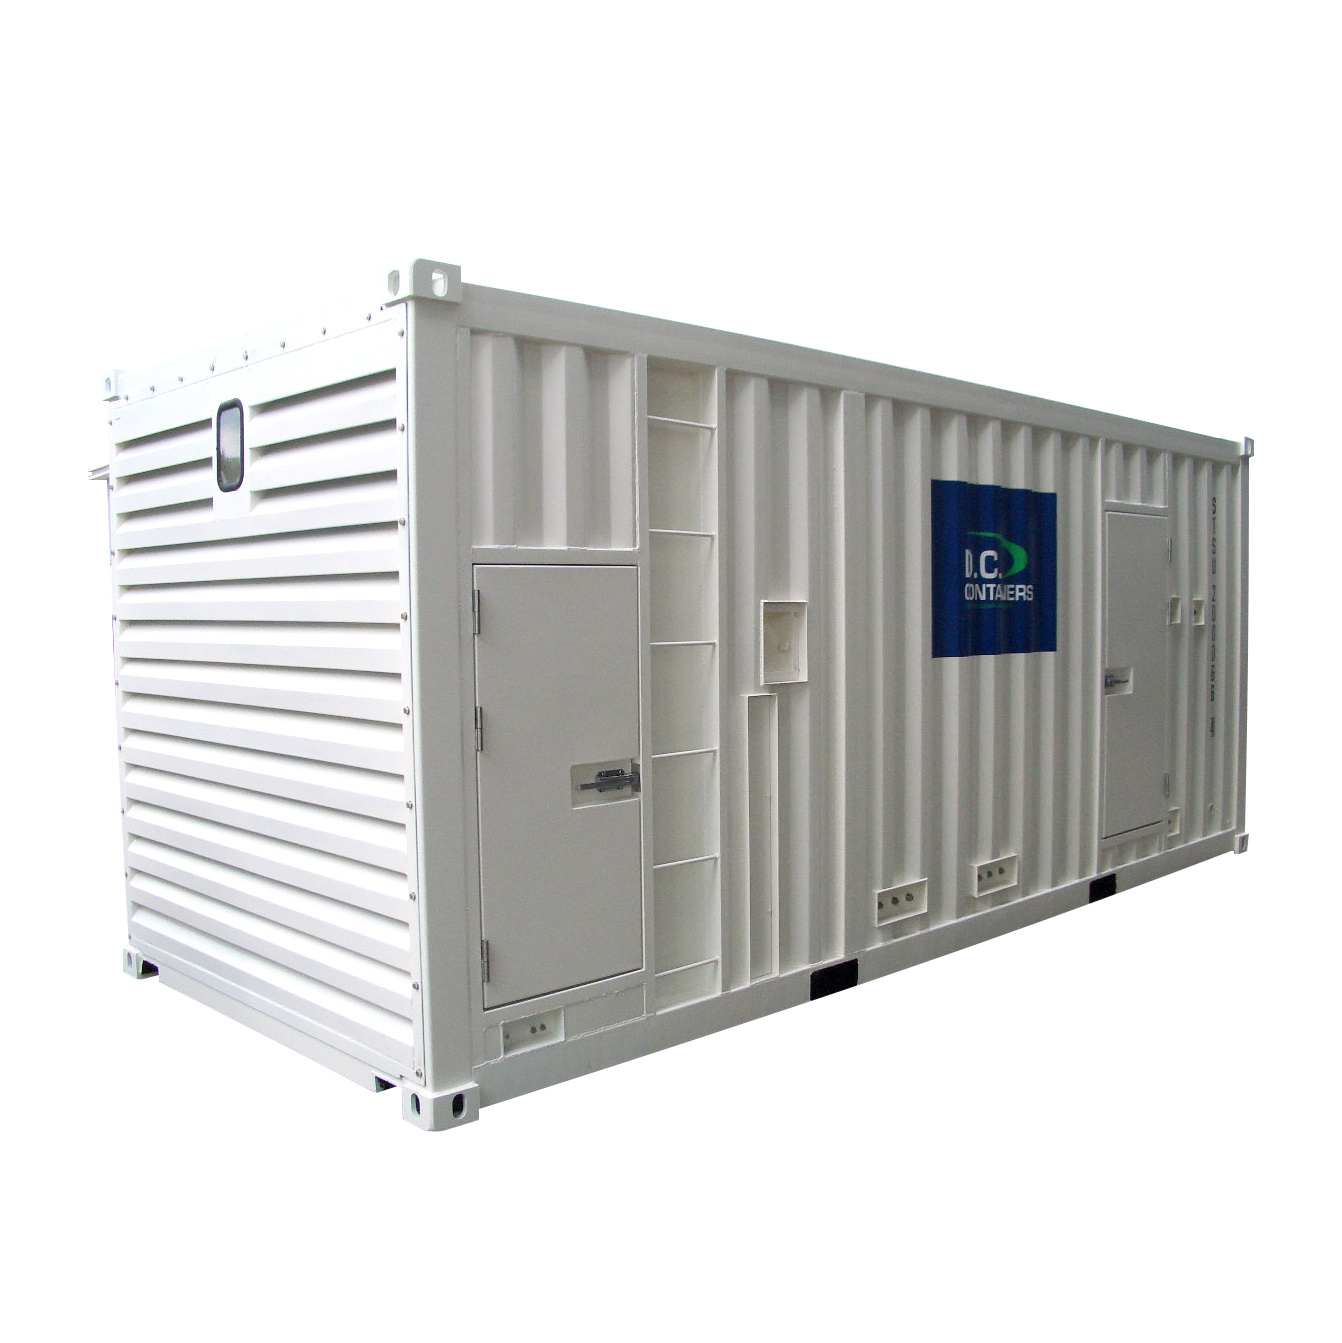 Special Mobile Generator Equipment Containers